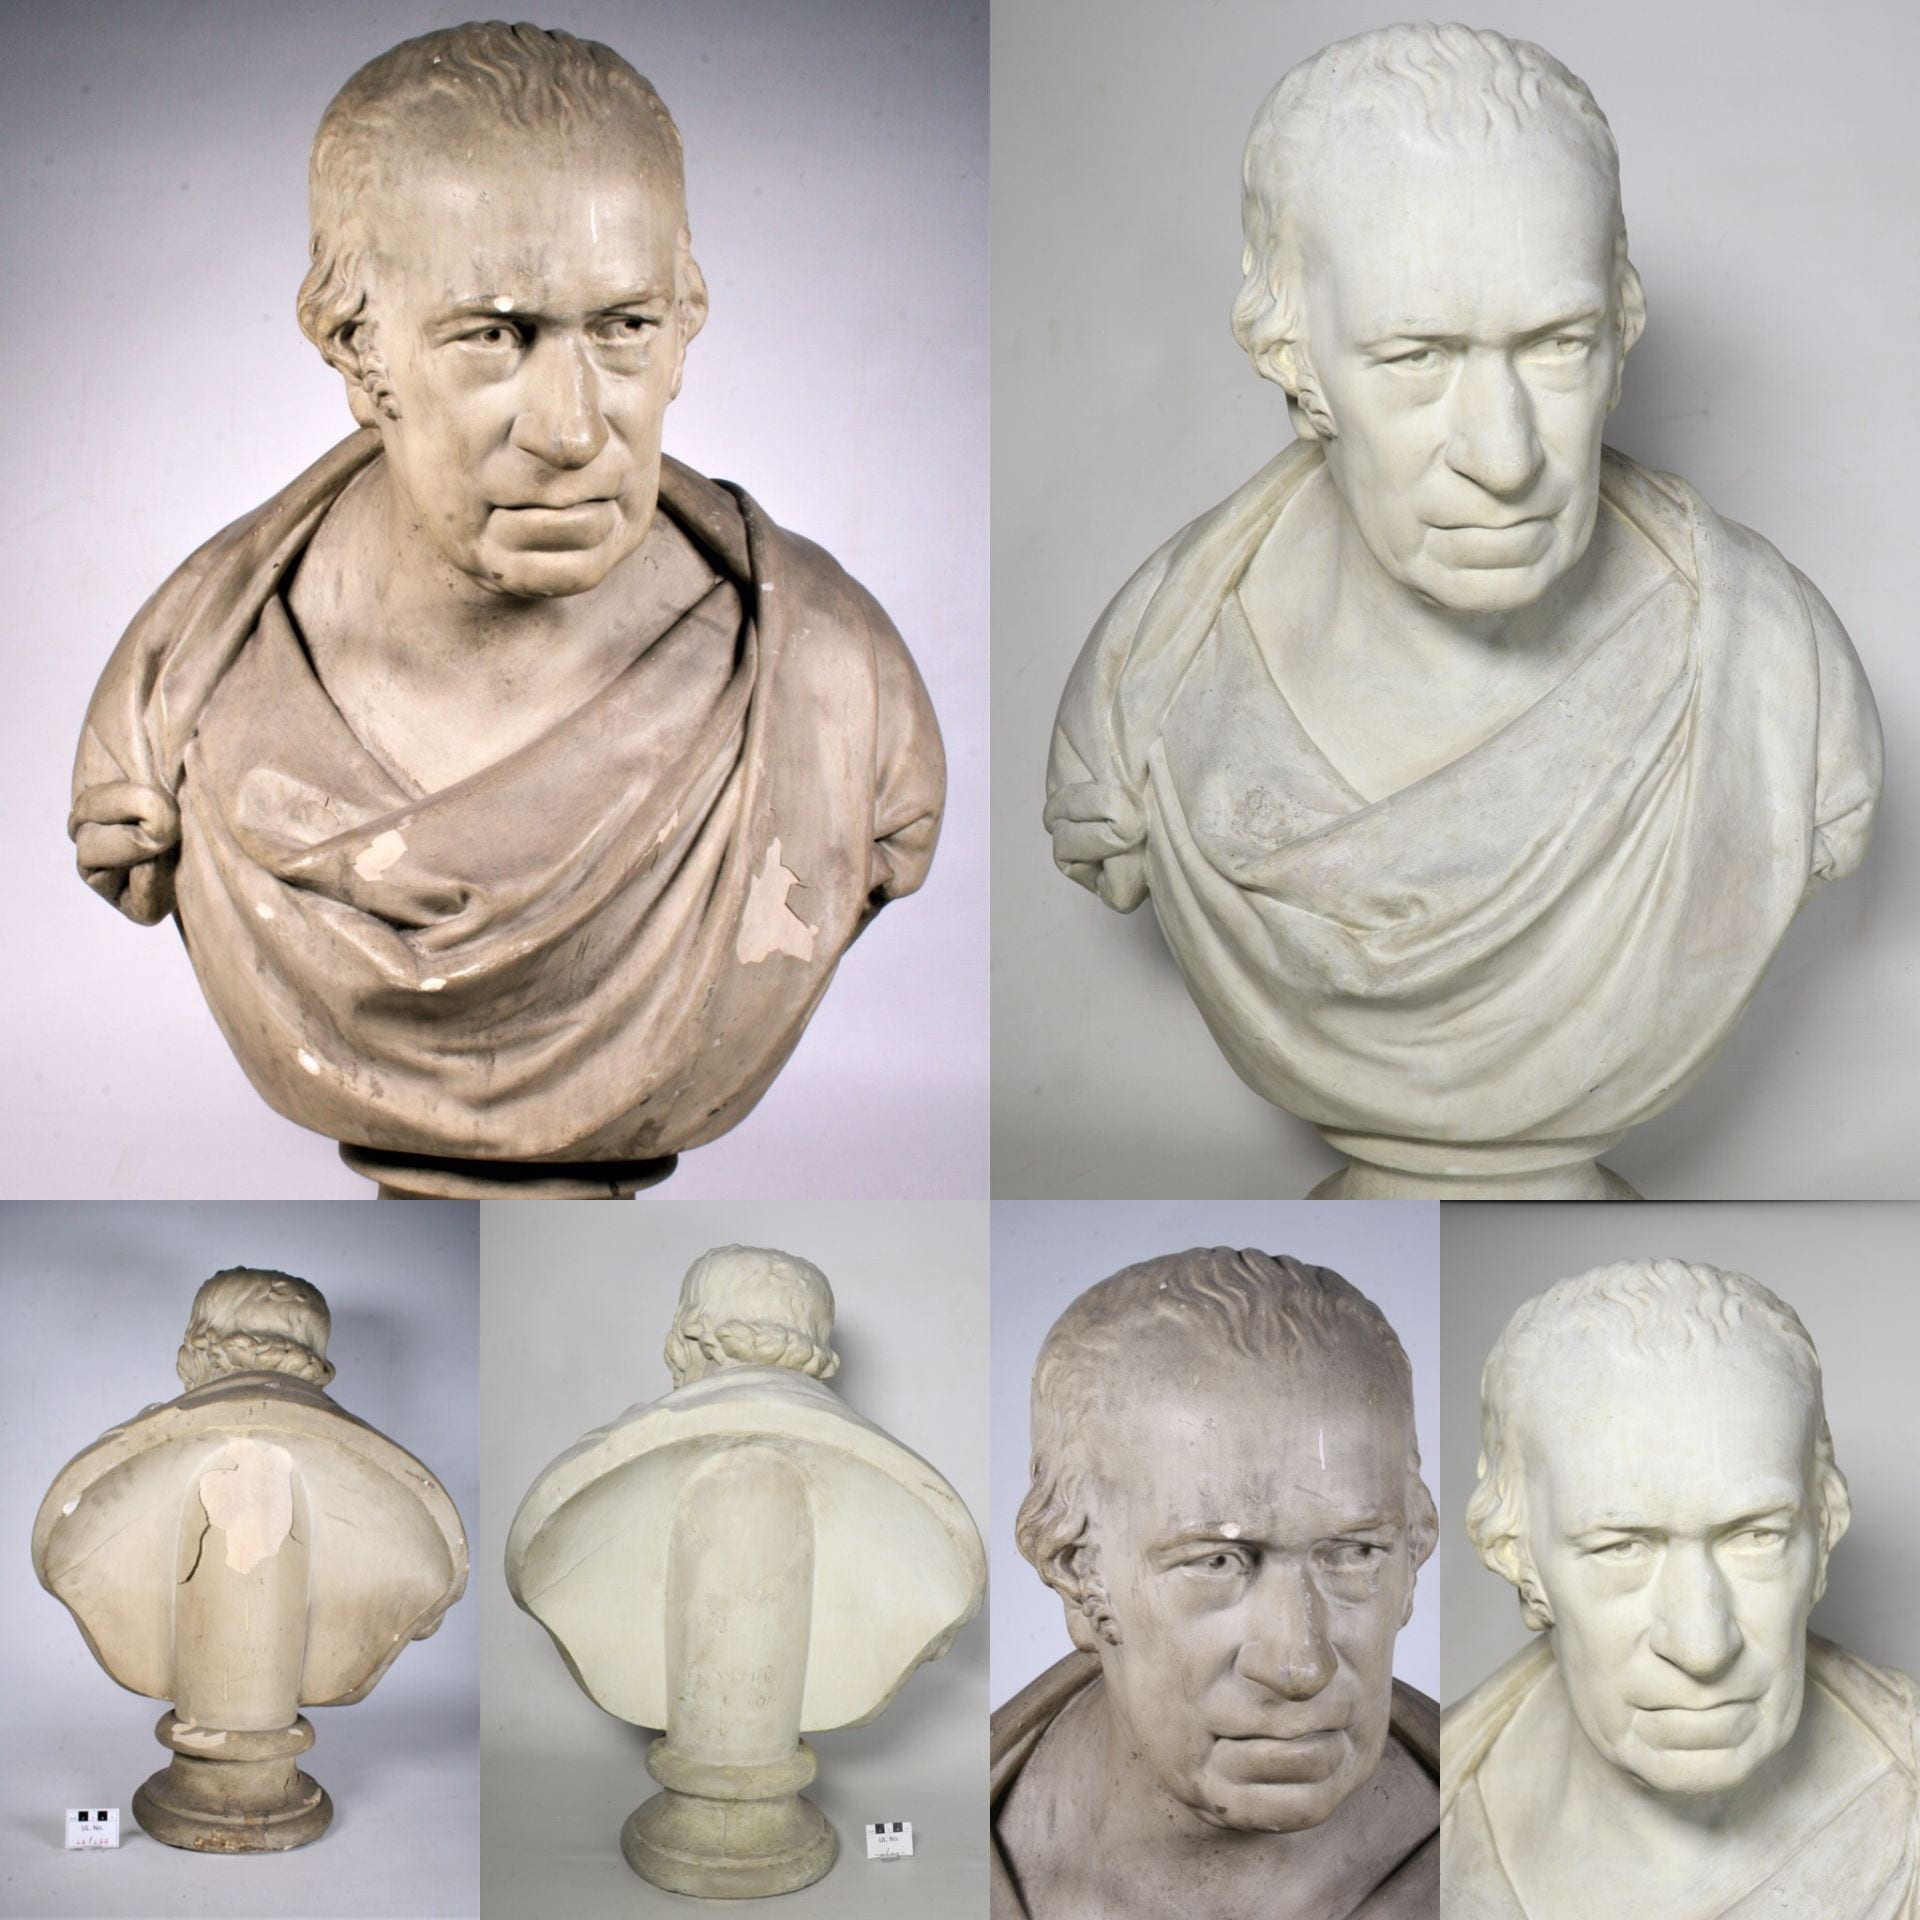 A chipped and dirty clay bust of inventor James Watt, and next to it, the same bust, but clean and with the chips filled-in.